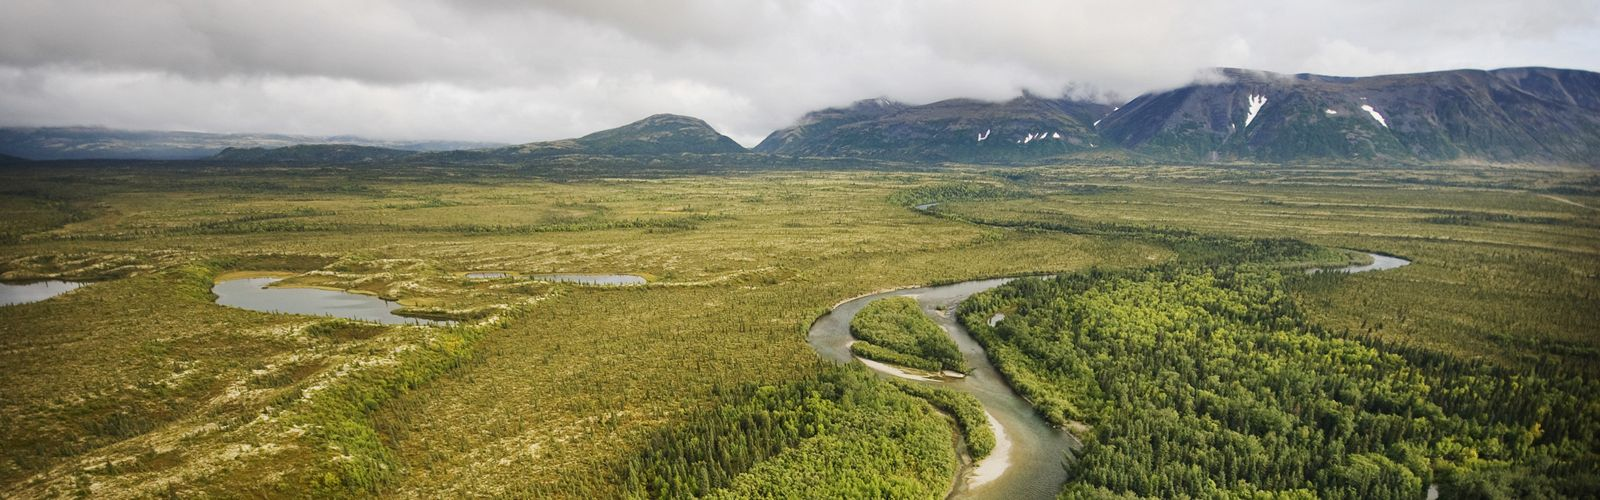 A river in Alaska's Bristol Bay headwaters.